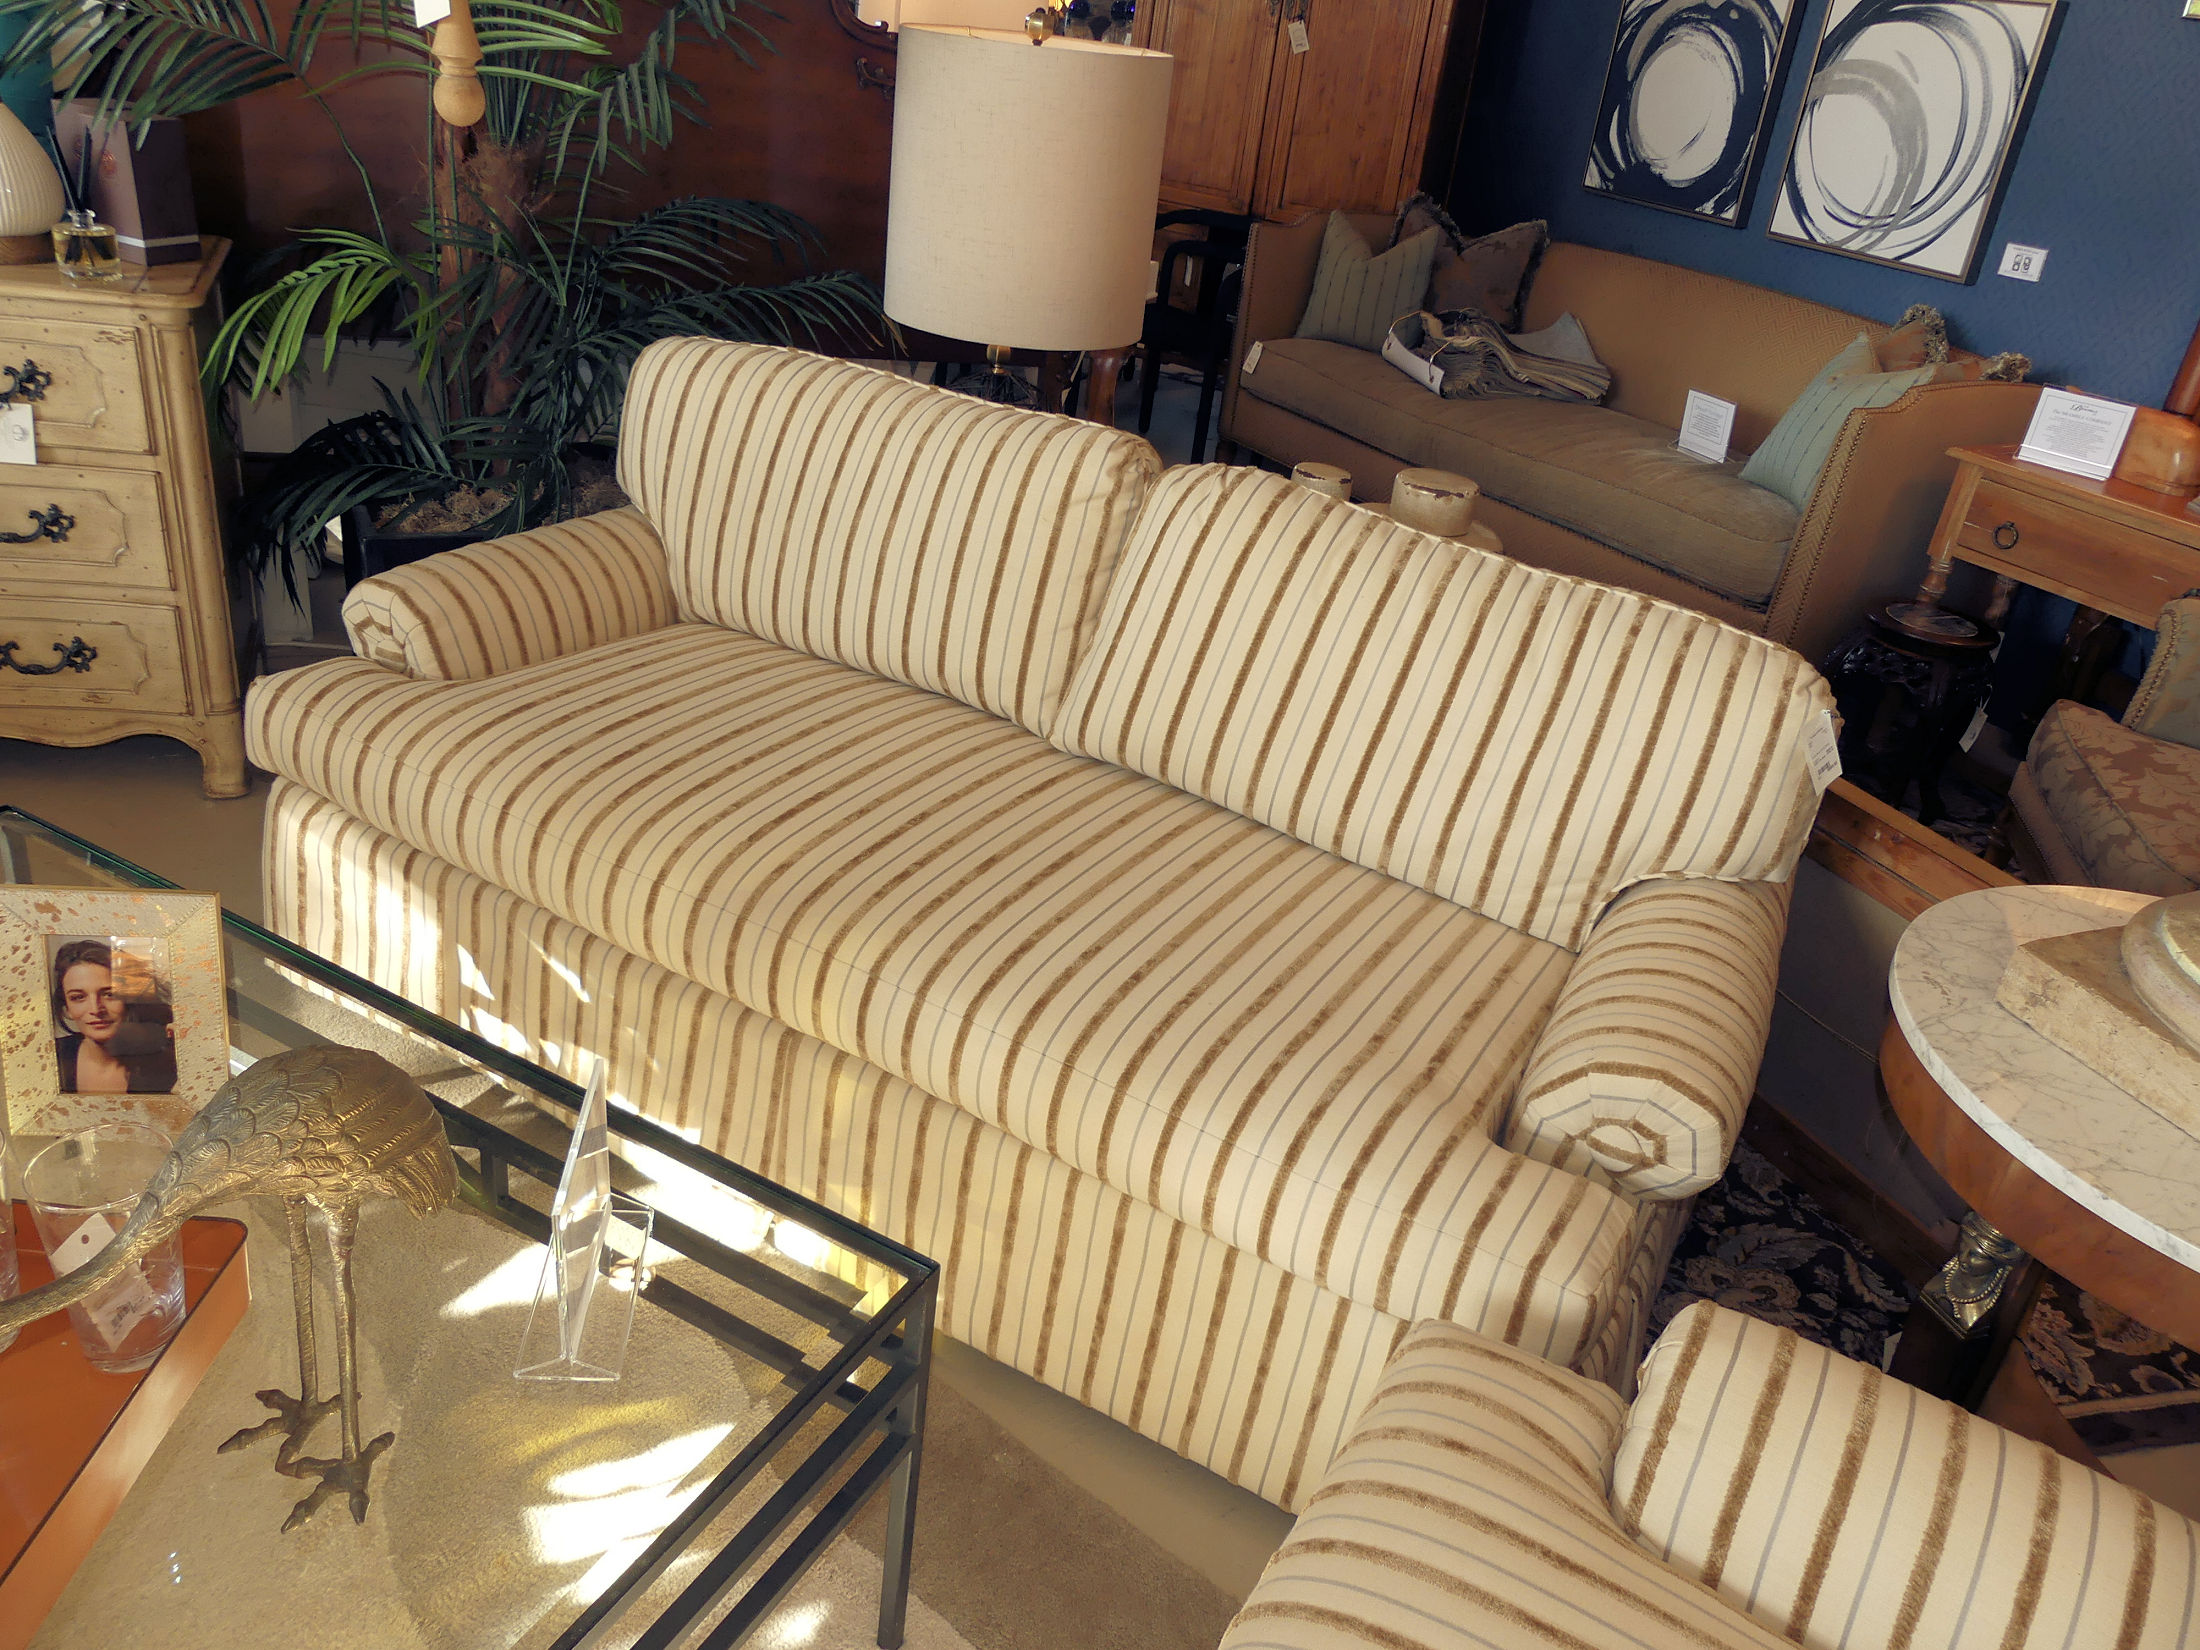 SOLD Luxurious Custom Striped Sofa - 2 Available